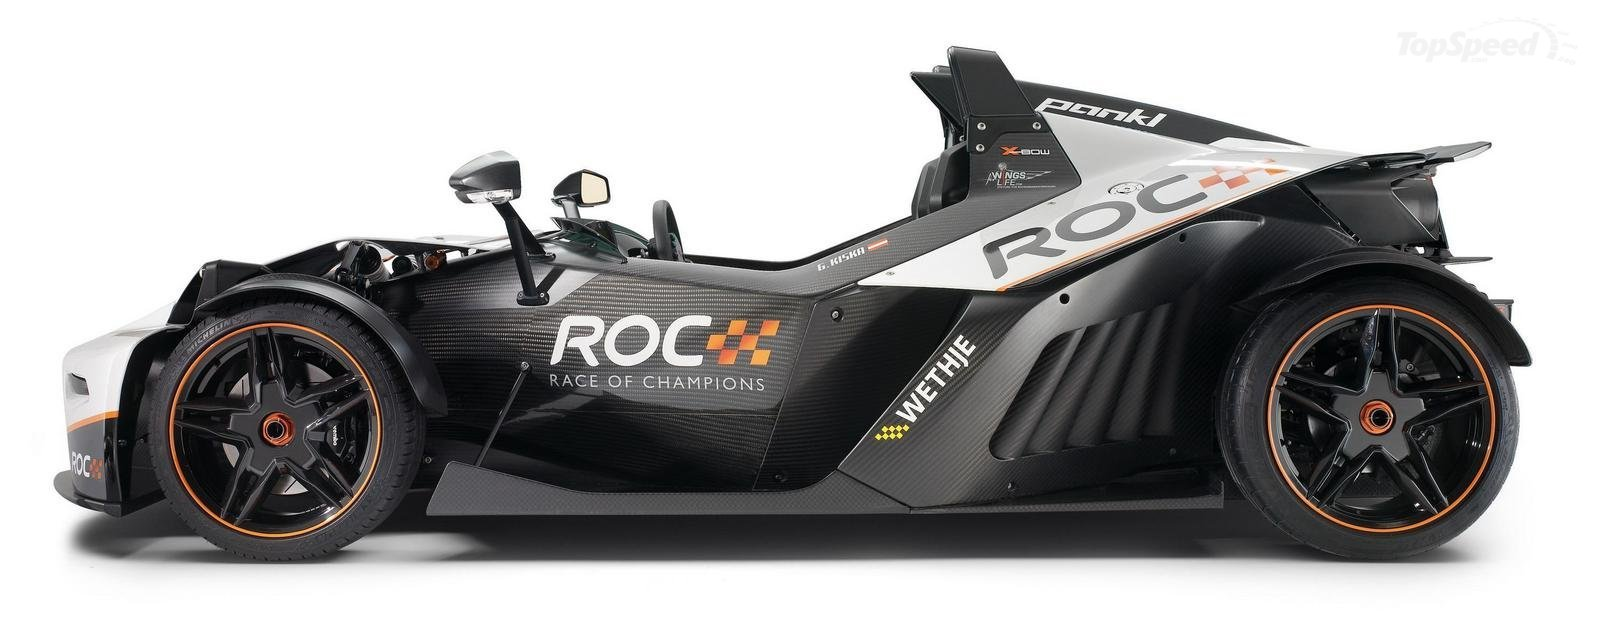 2009 ktm x bow roc picture 289004 car review top speed. Black Bedroom Furniture Sets. Home Design Ideas